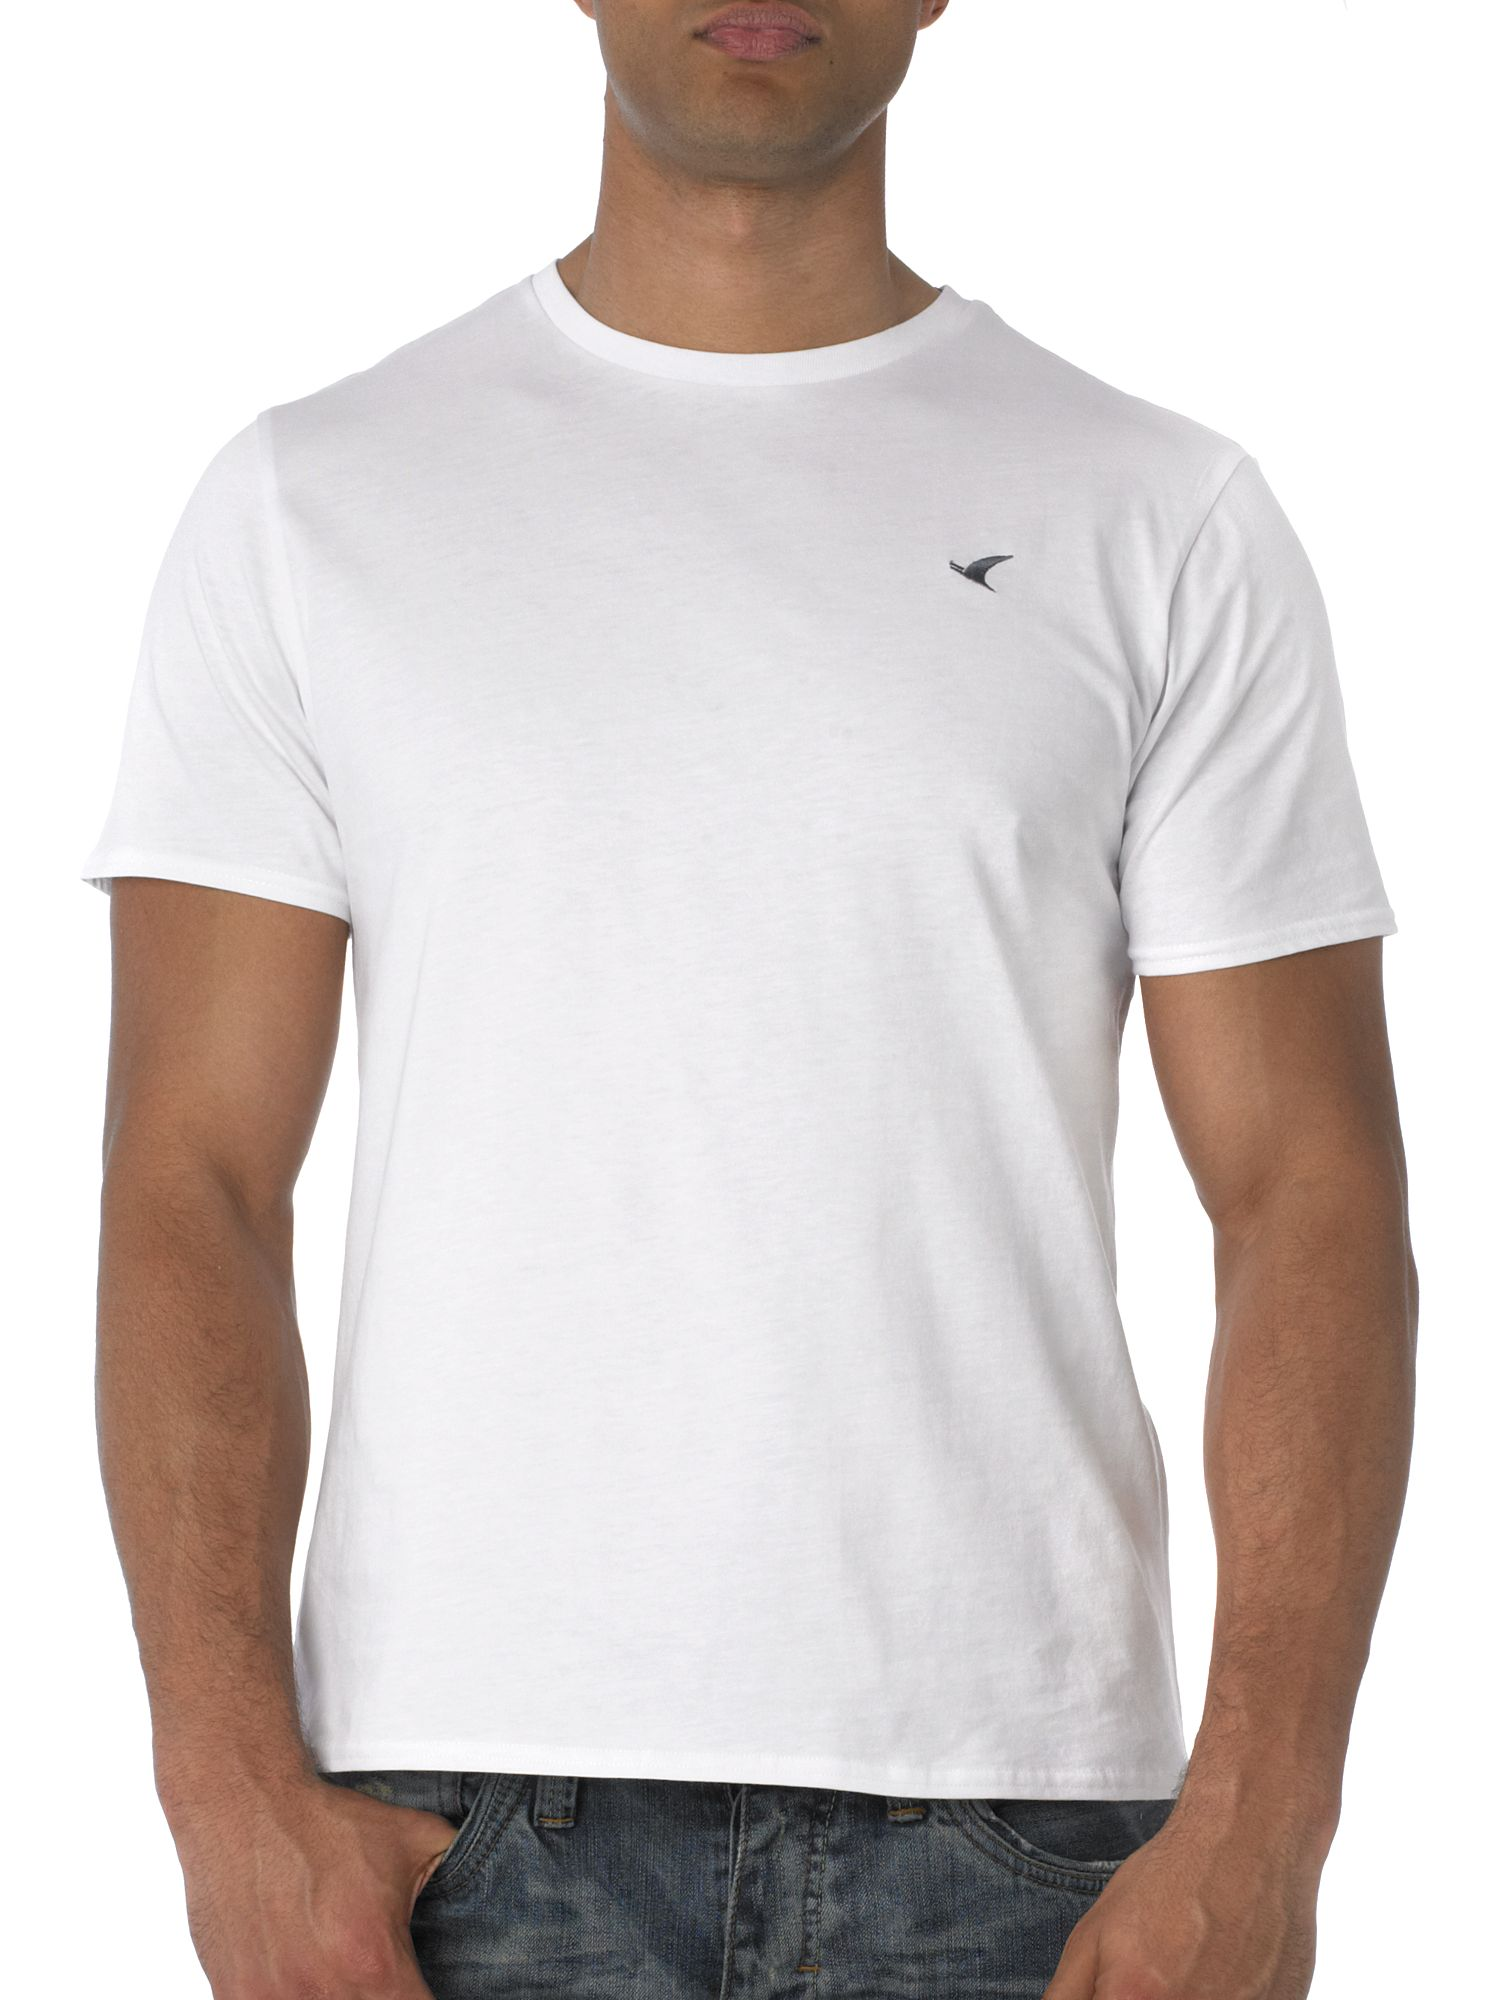 Howick Logo nightwear t-shirt White product image